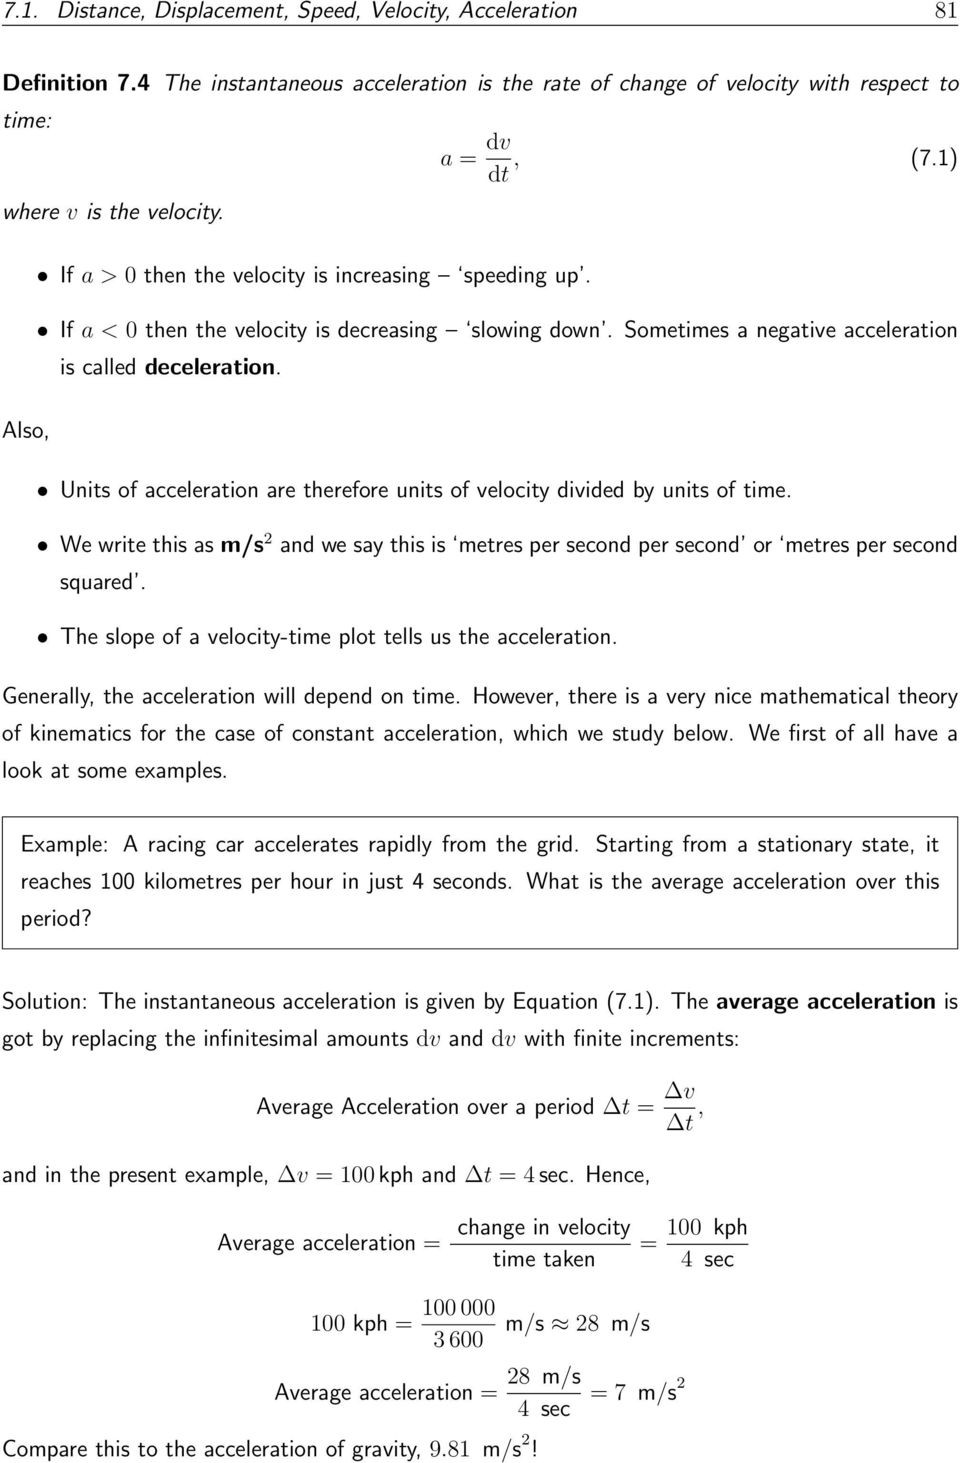 Distance Vs Displacement Worksheet to Define Concepts Such as Distance Displacement Speed